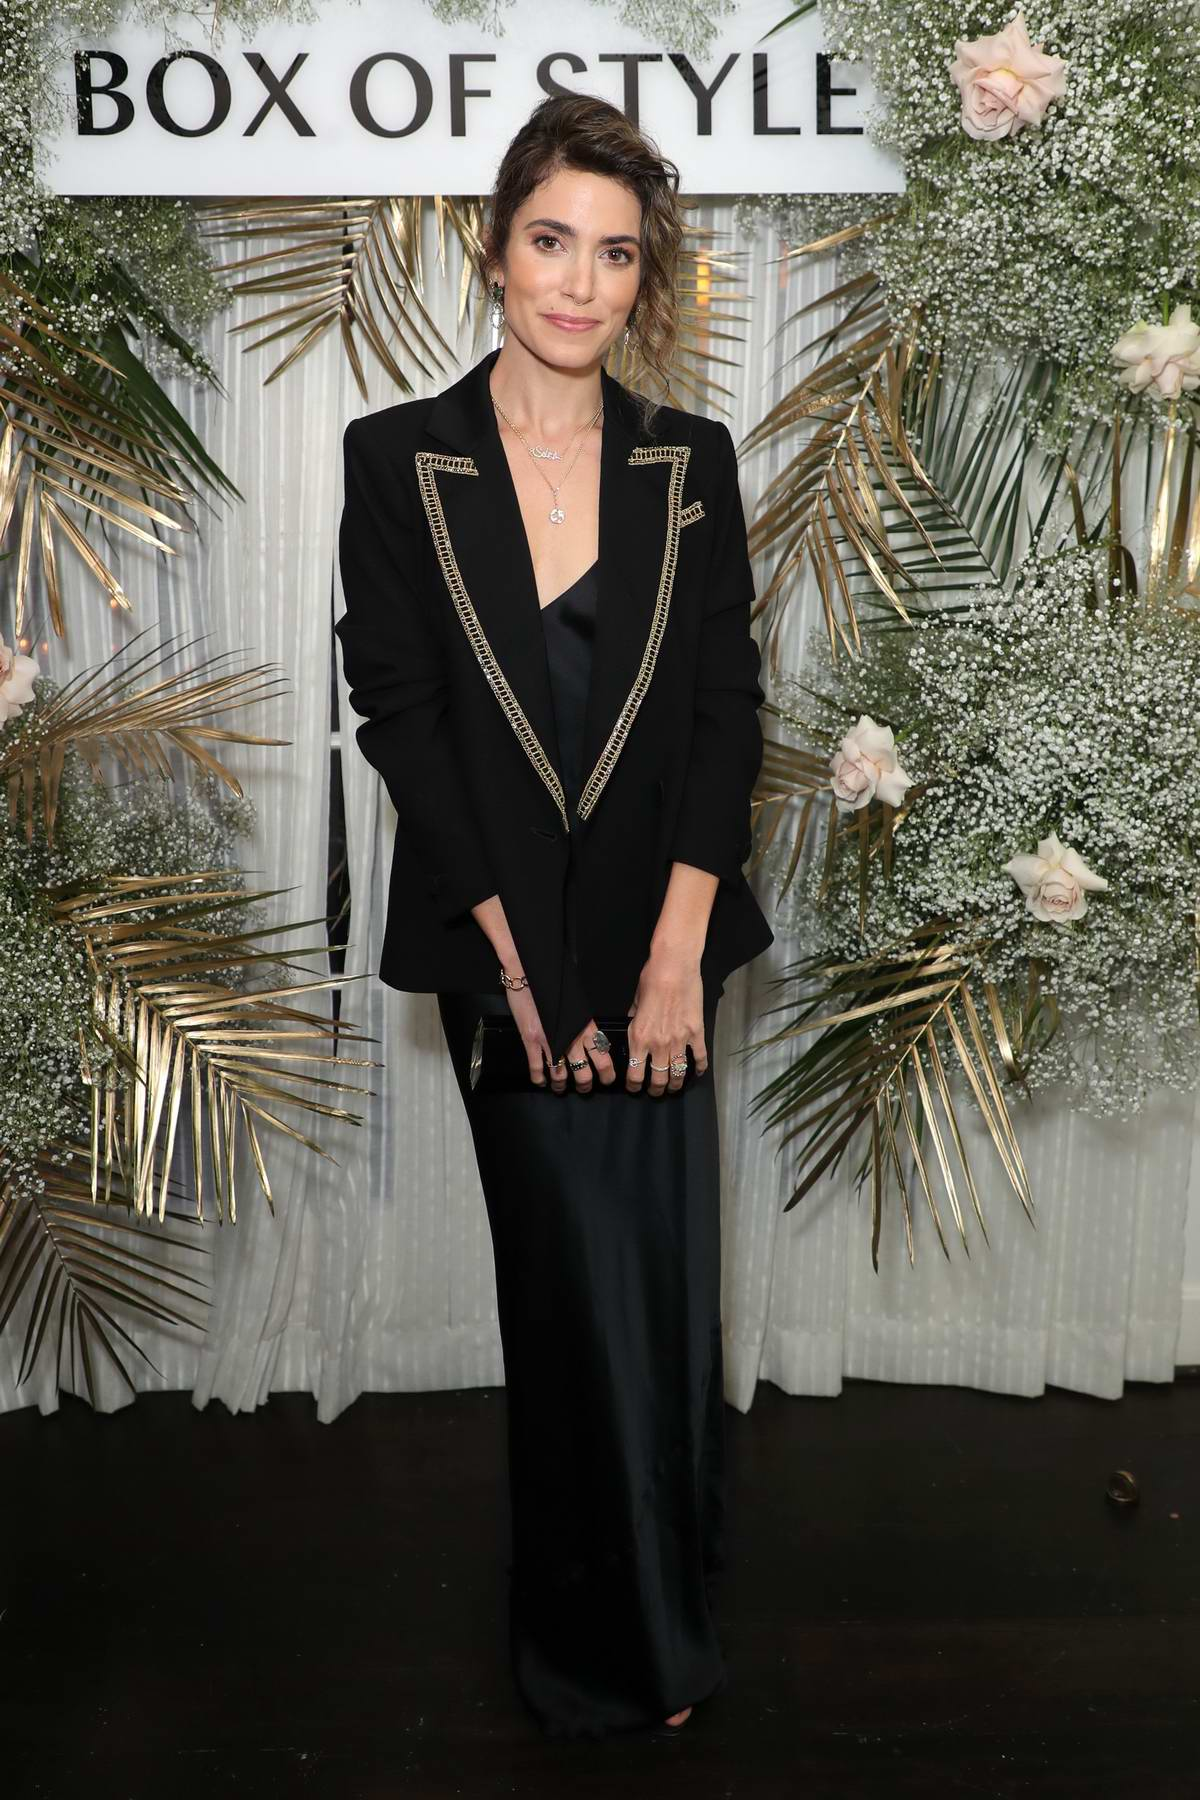 Nikki Reed attends Rachel Zoe Collection and Box of Style Spring Event with Tanqueray in Los Angeles